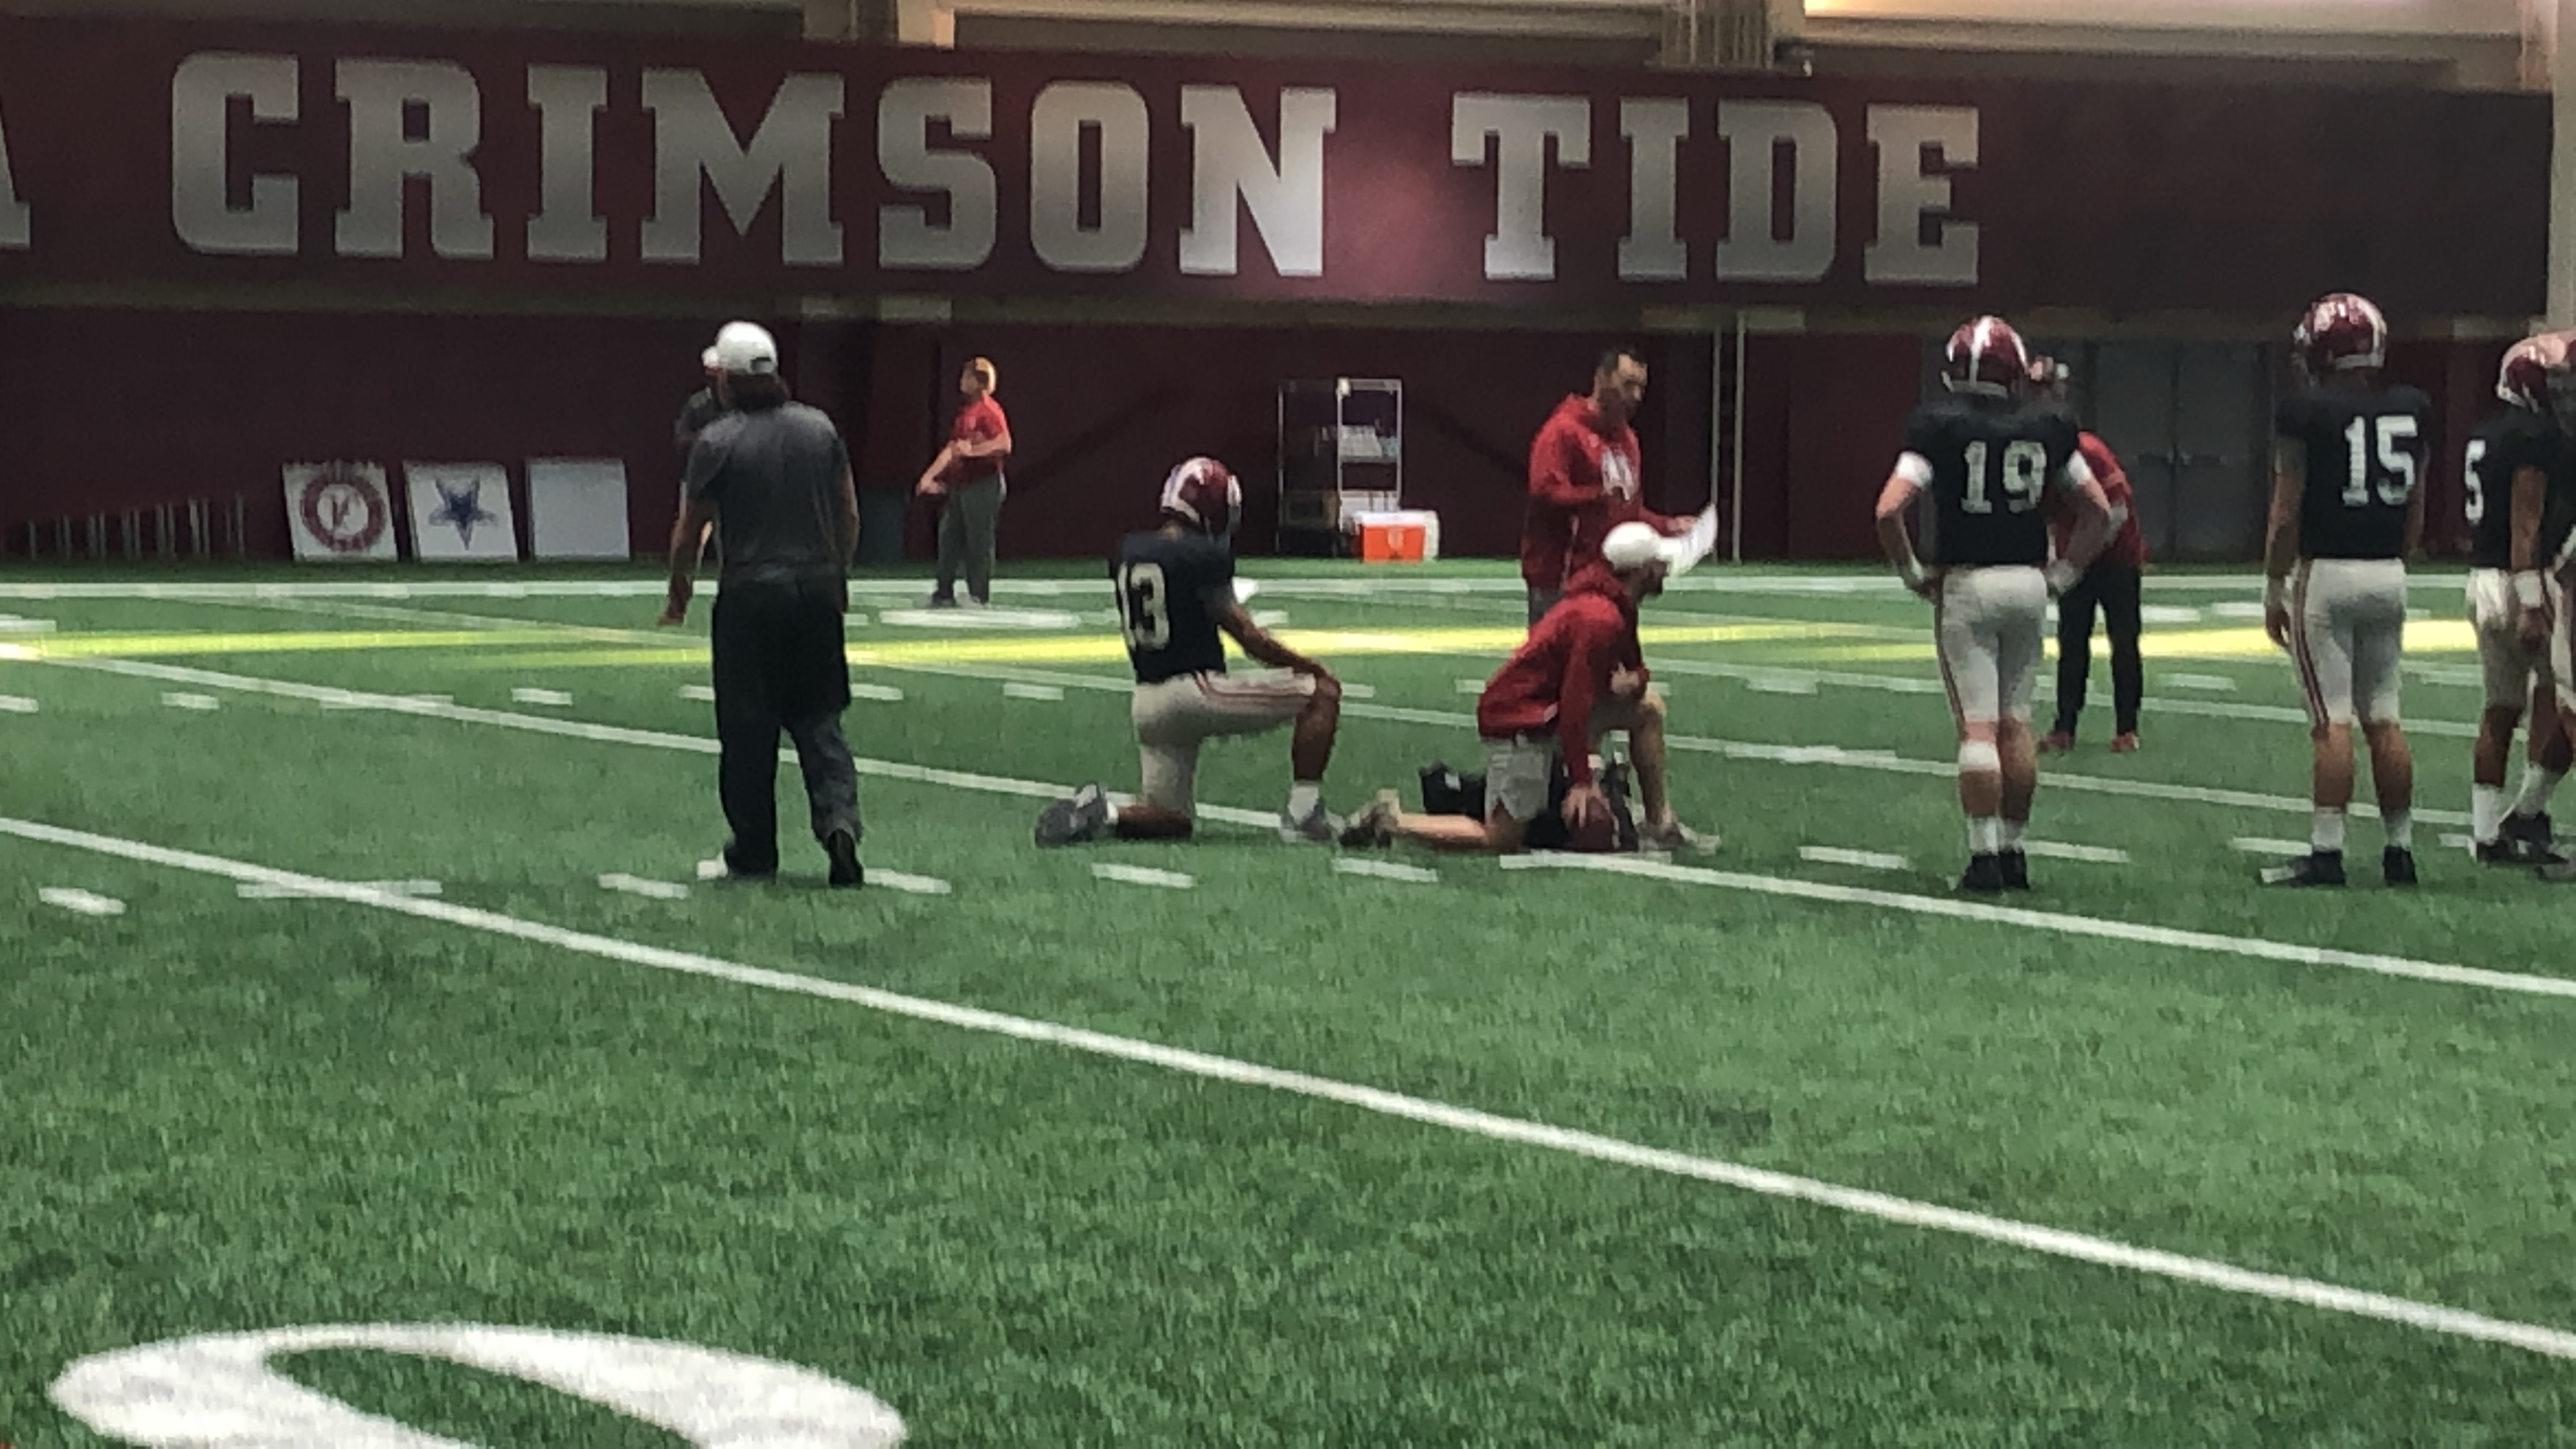 Tua Tagovailoa at Alabama's Practice, but Held Out of Drills